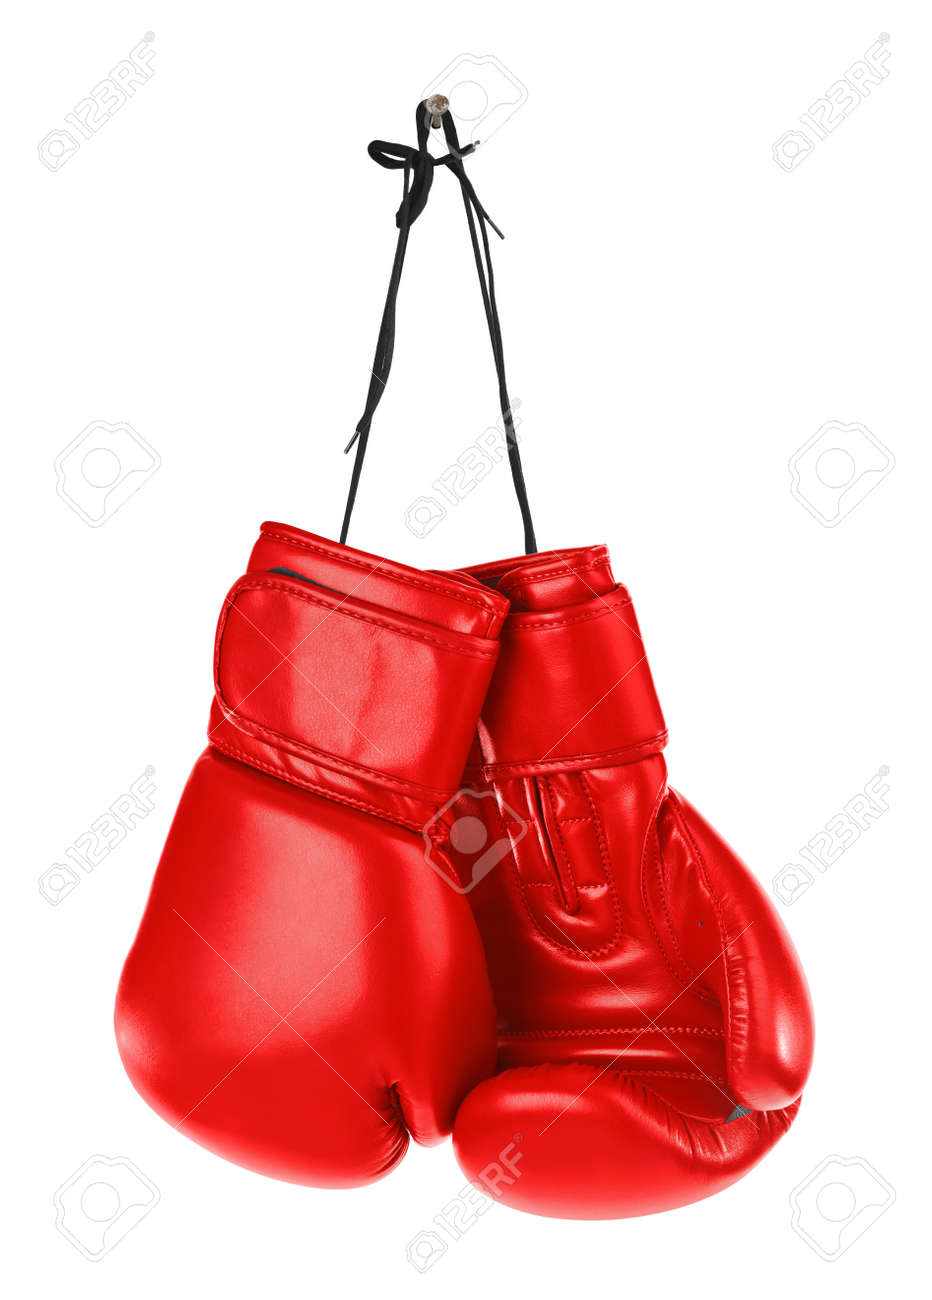 Hanging boxing gloves isolated on white background - 38412492